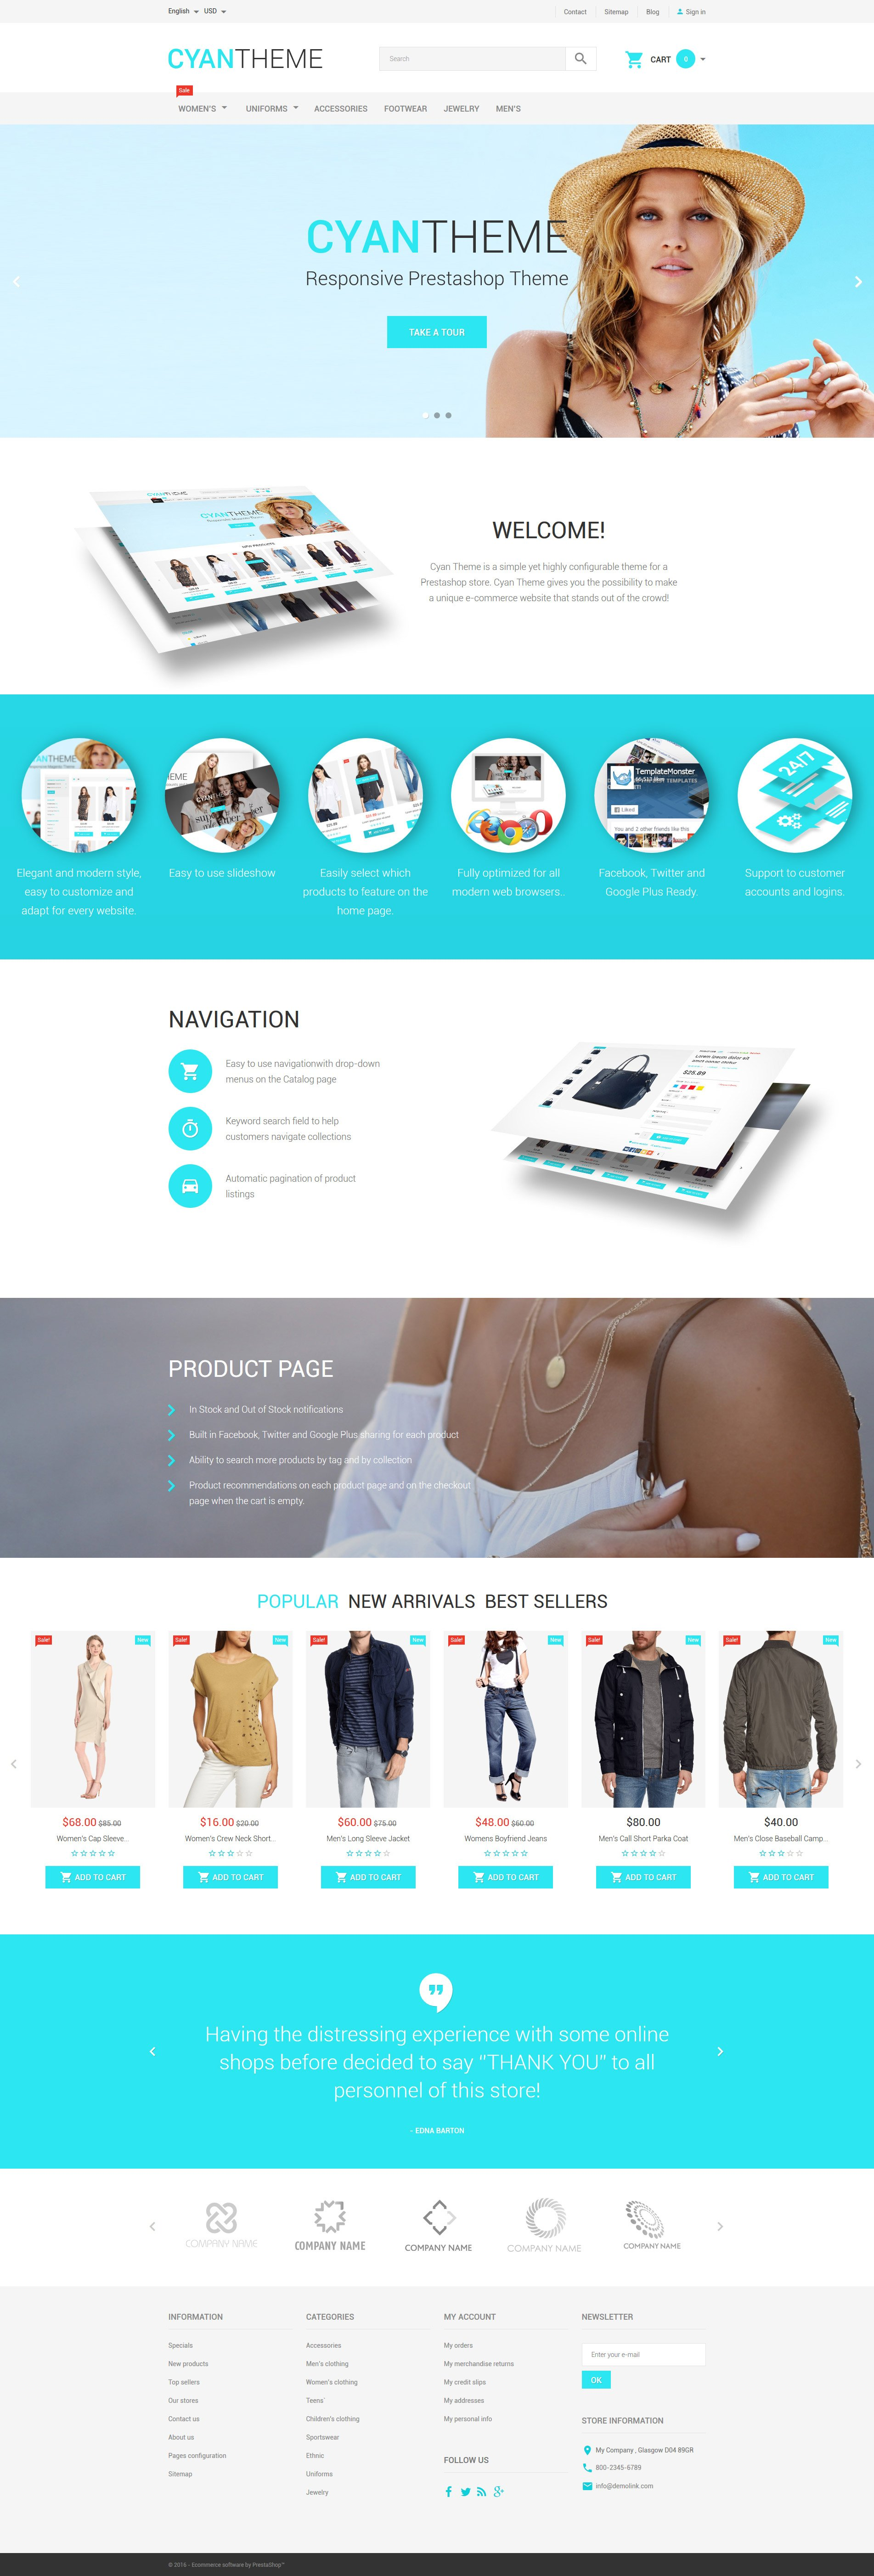 CyanTheme PrestaShop Theme